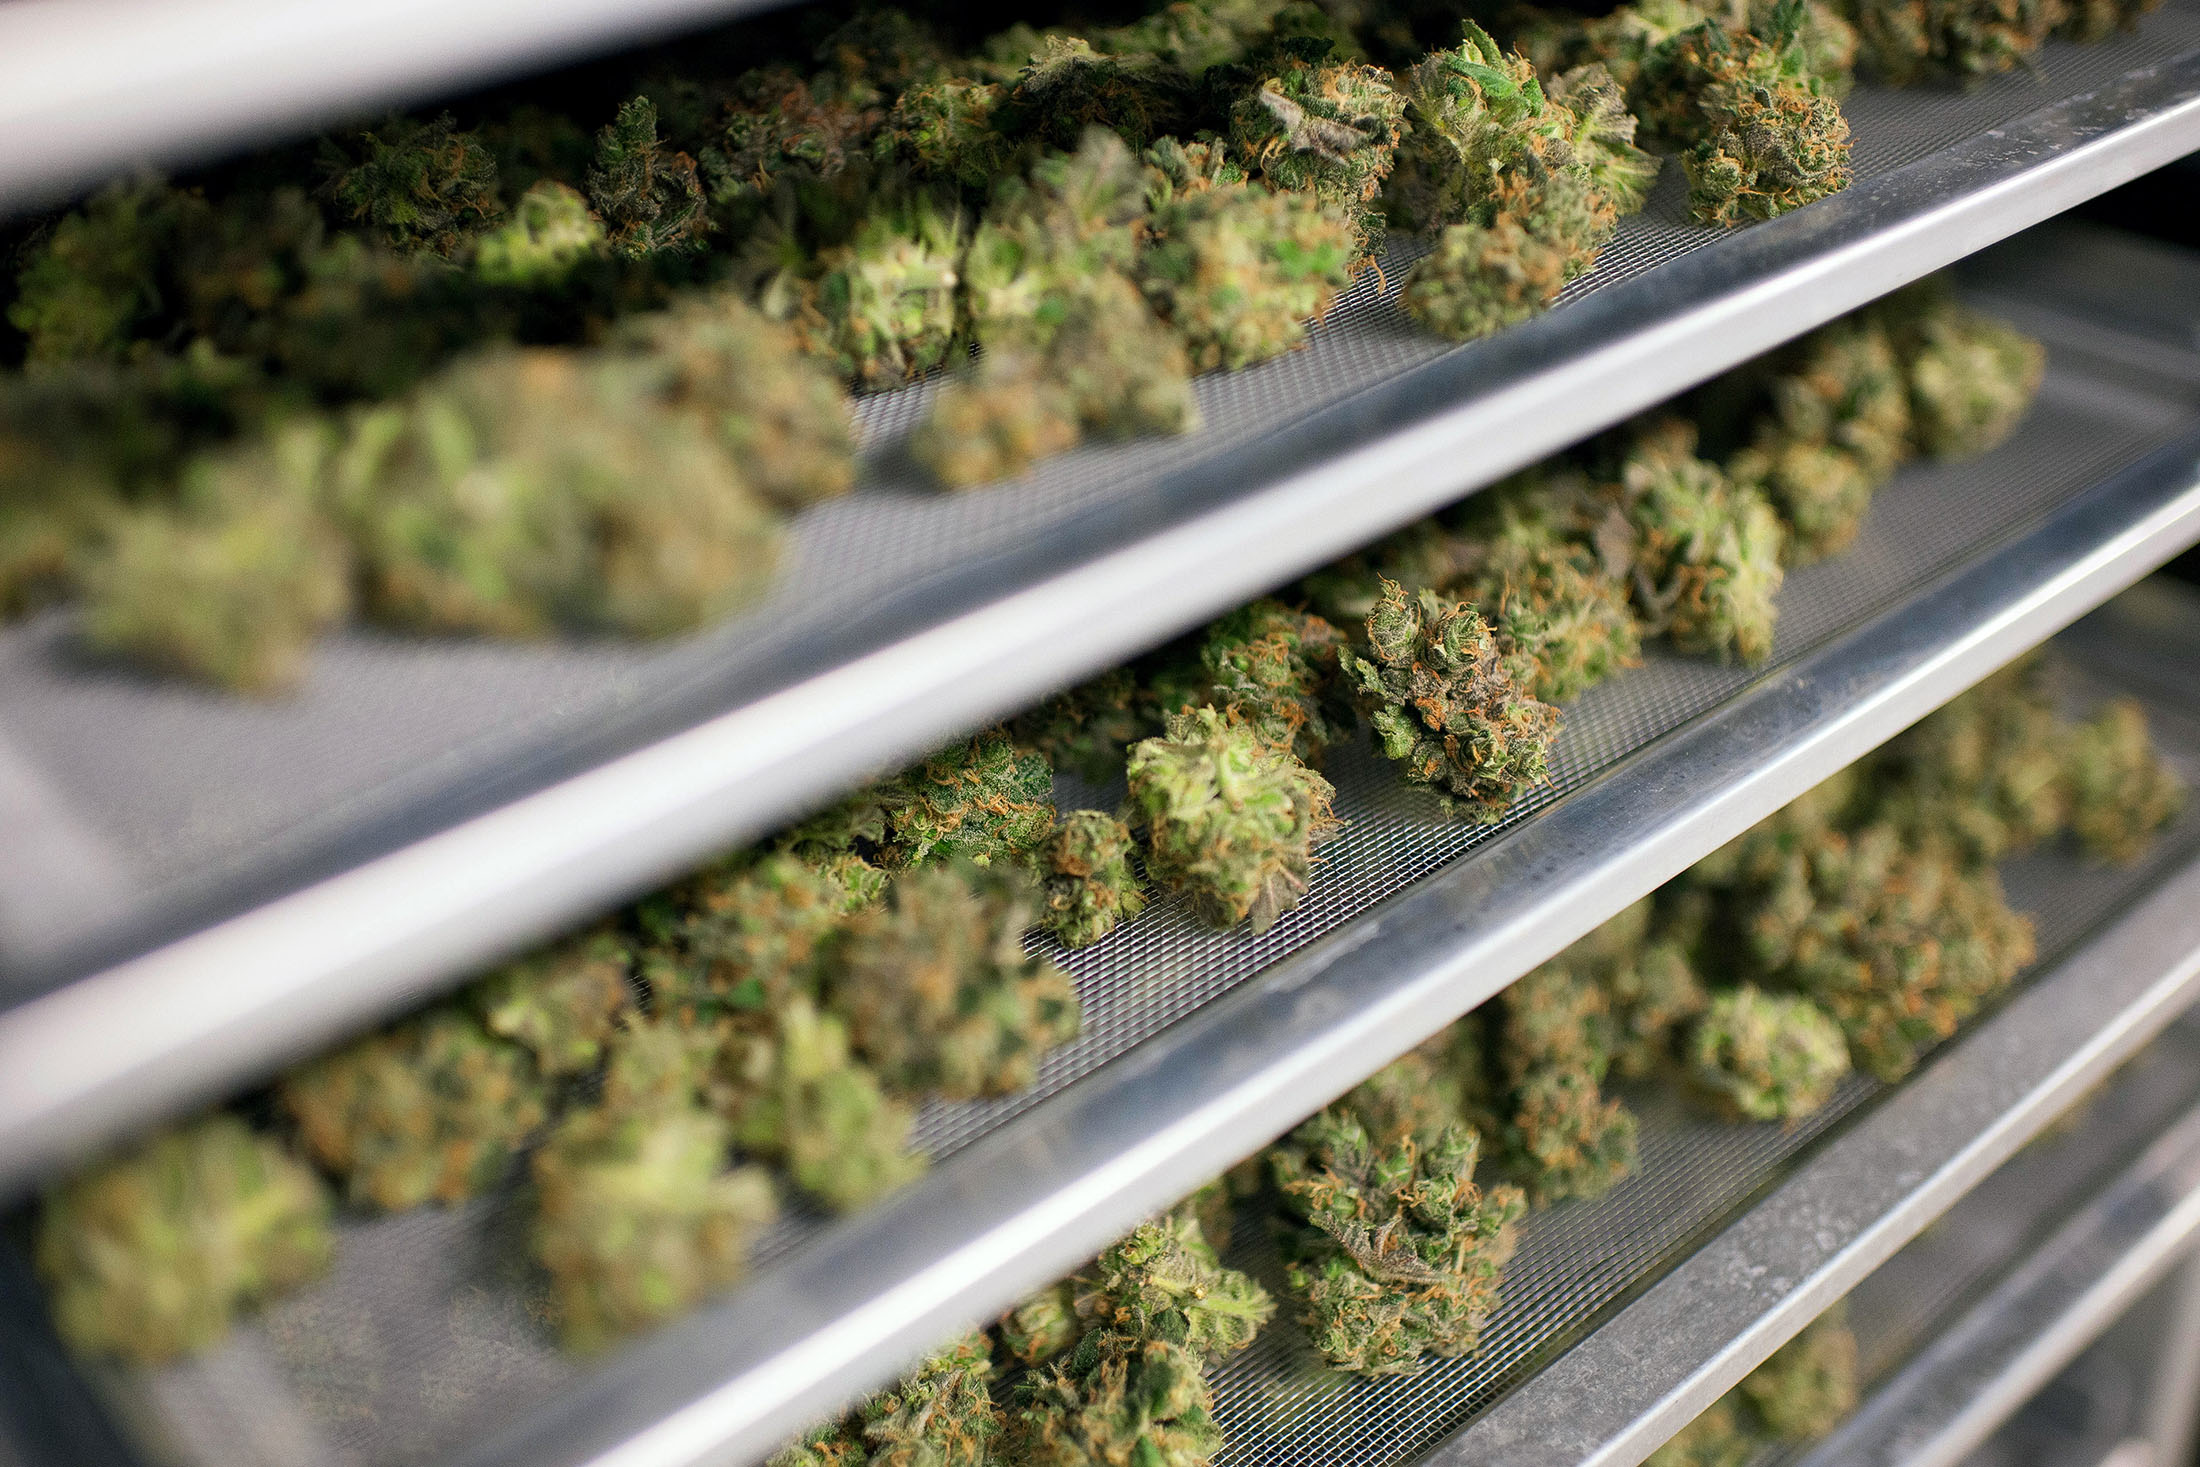 You Can Now Buy and Sell 'WEED' on the Toronto Stock Exchange